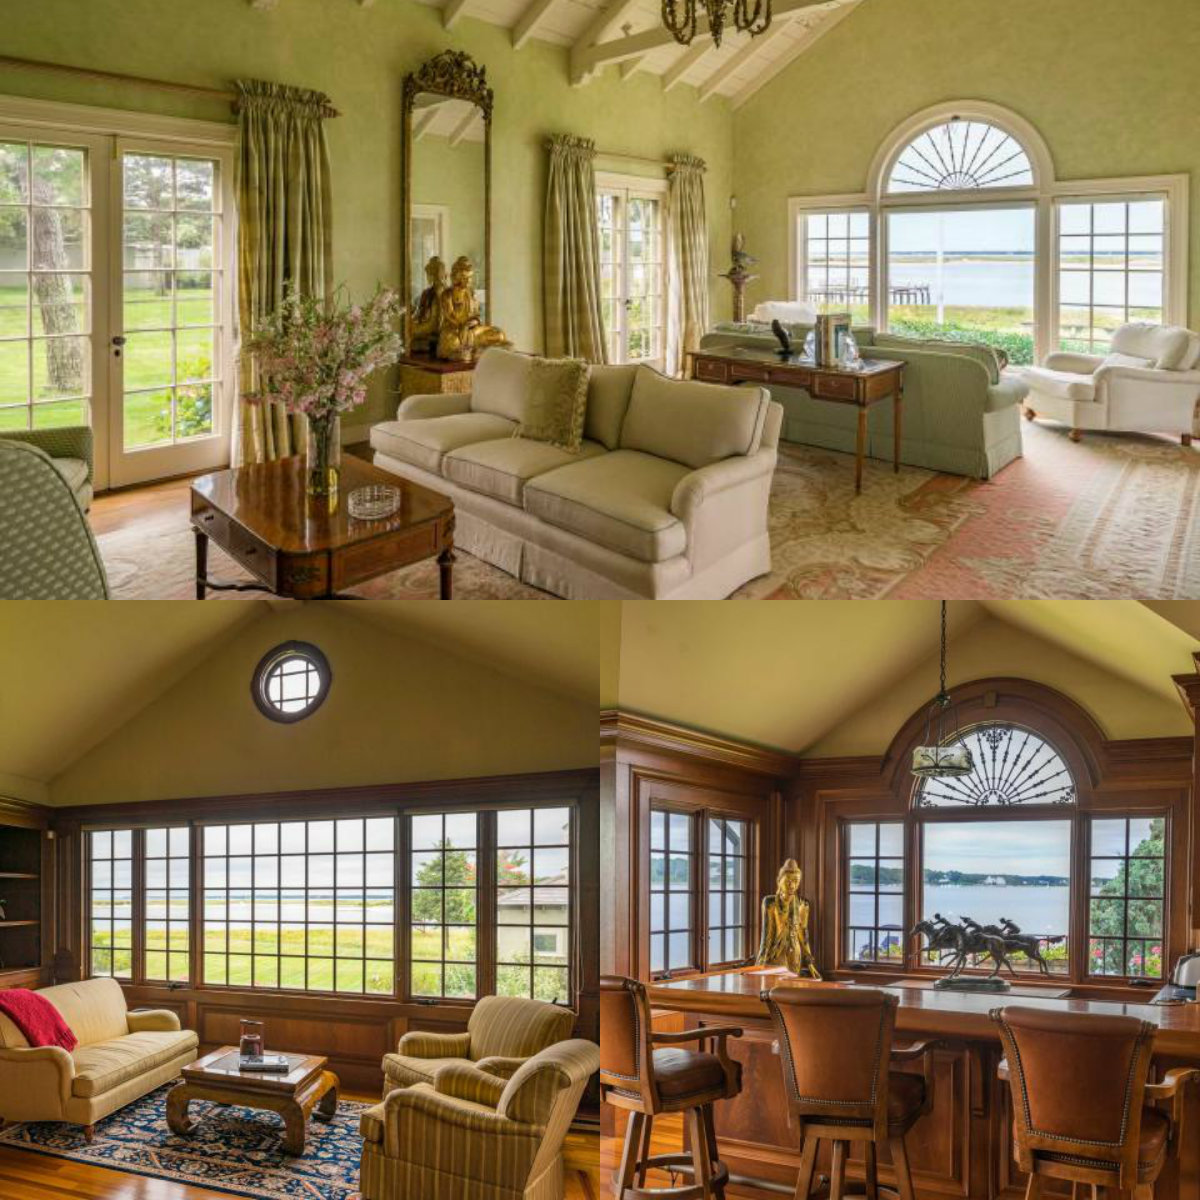 Images of rooms with windows in 986 Sea View Avenue in Osterville on Cape Cod MA